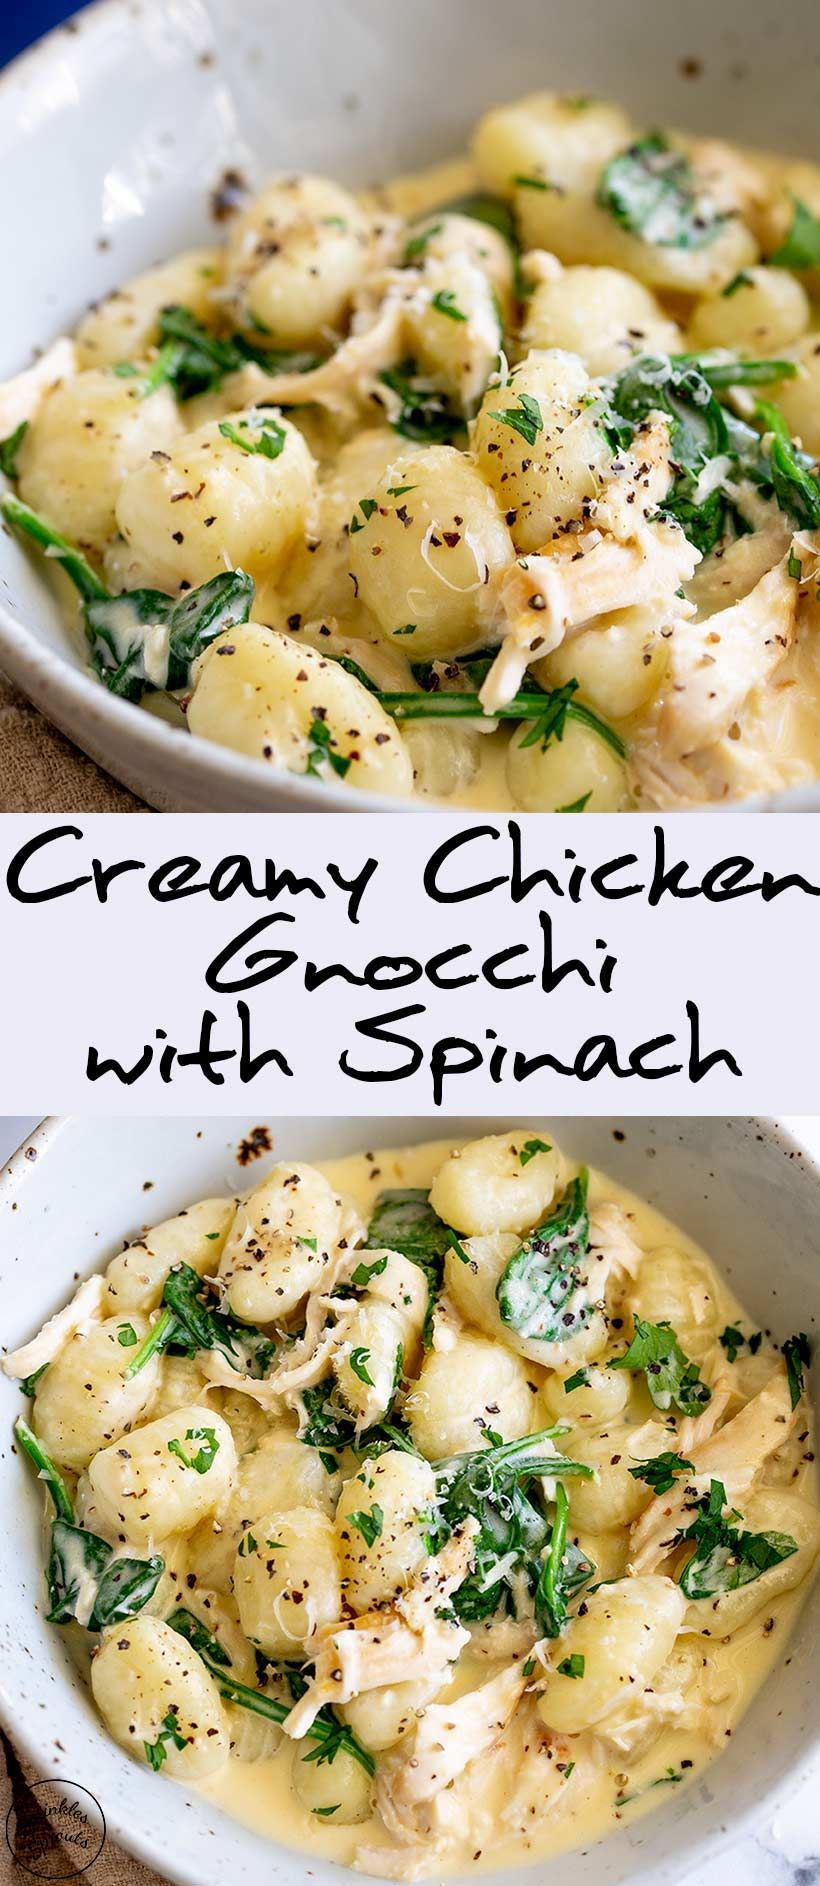 Creamy Chicken Gnocchi with Spinach | Sprinkles and Sprouts